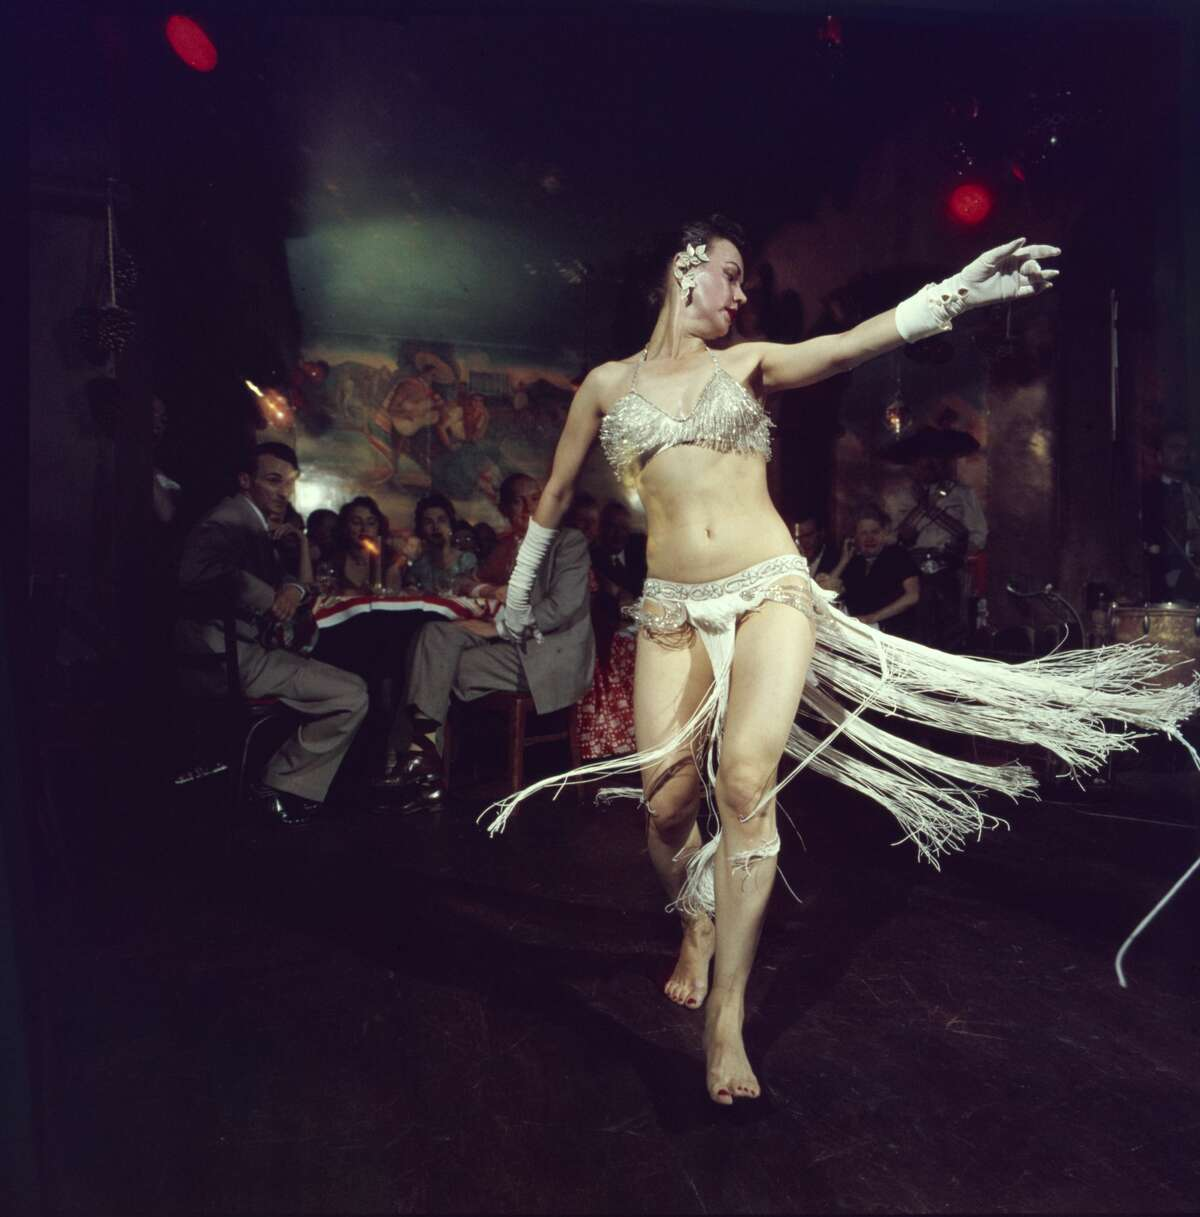 A dancers dressed in a white sequinned and fringed bikini and elbow gloves as she performs for patrons at the Sinaloa Club, San Francisco, California, 1956. (Photo by Nat Farbman/The LIFE Picture Collection/Getty Images)